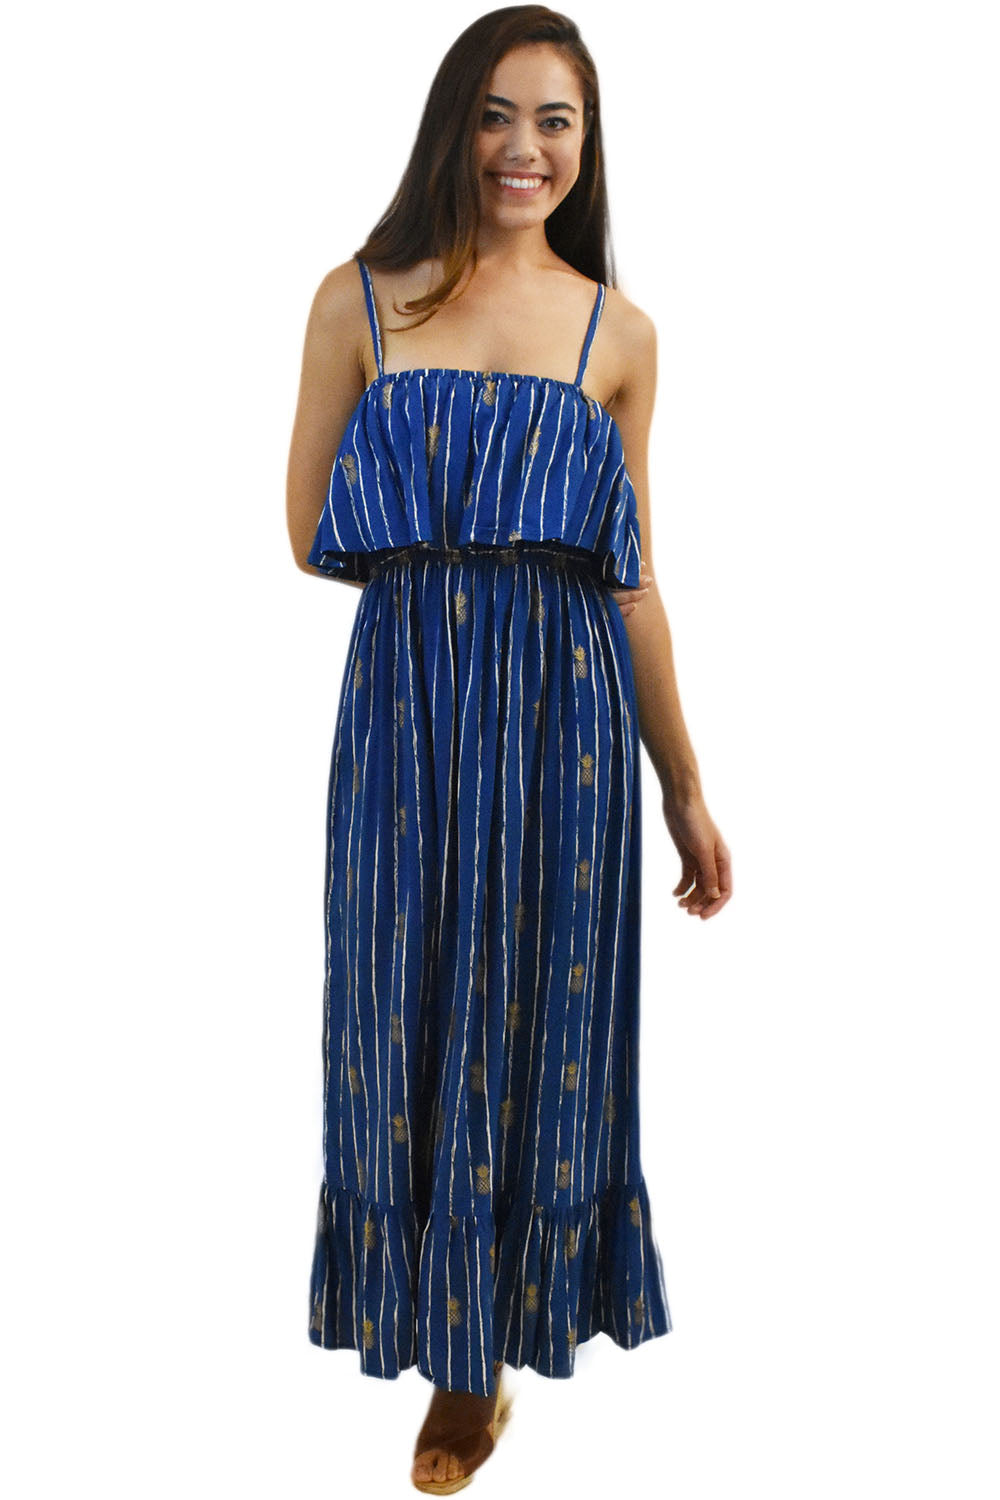 Moana Long Dress in Pineapple Print Navy